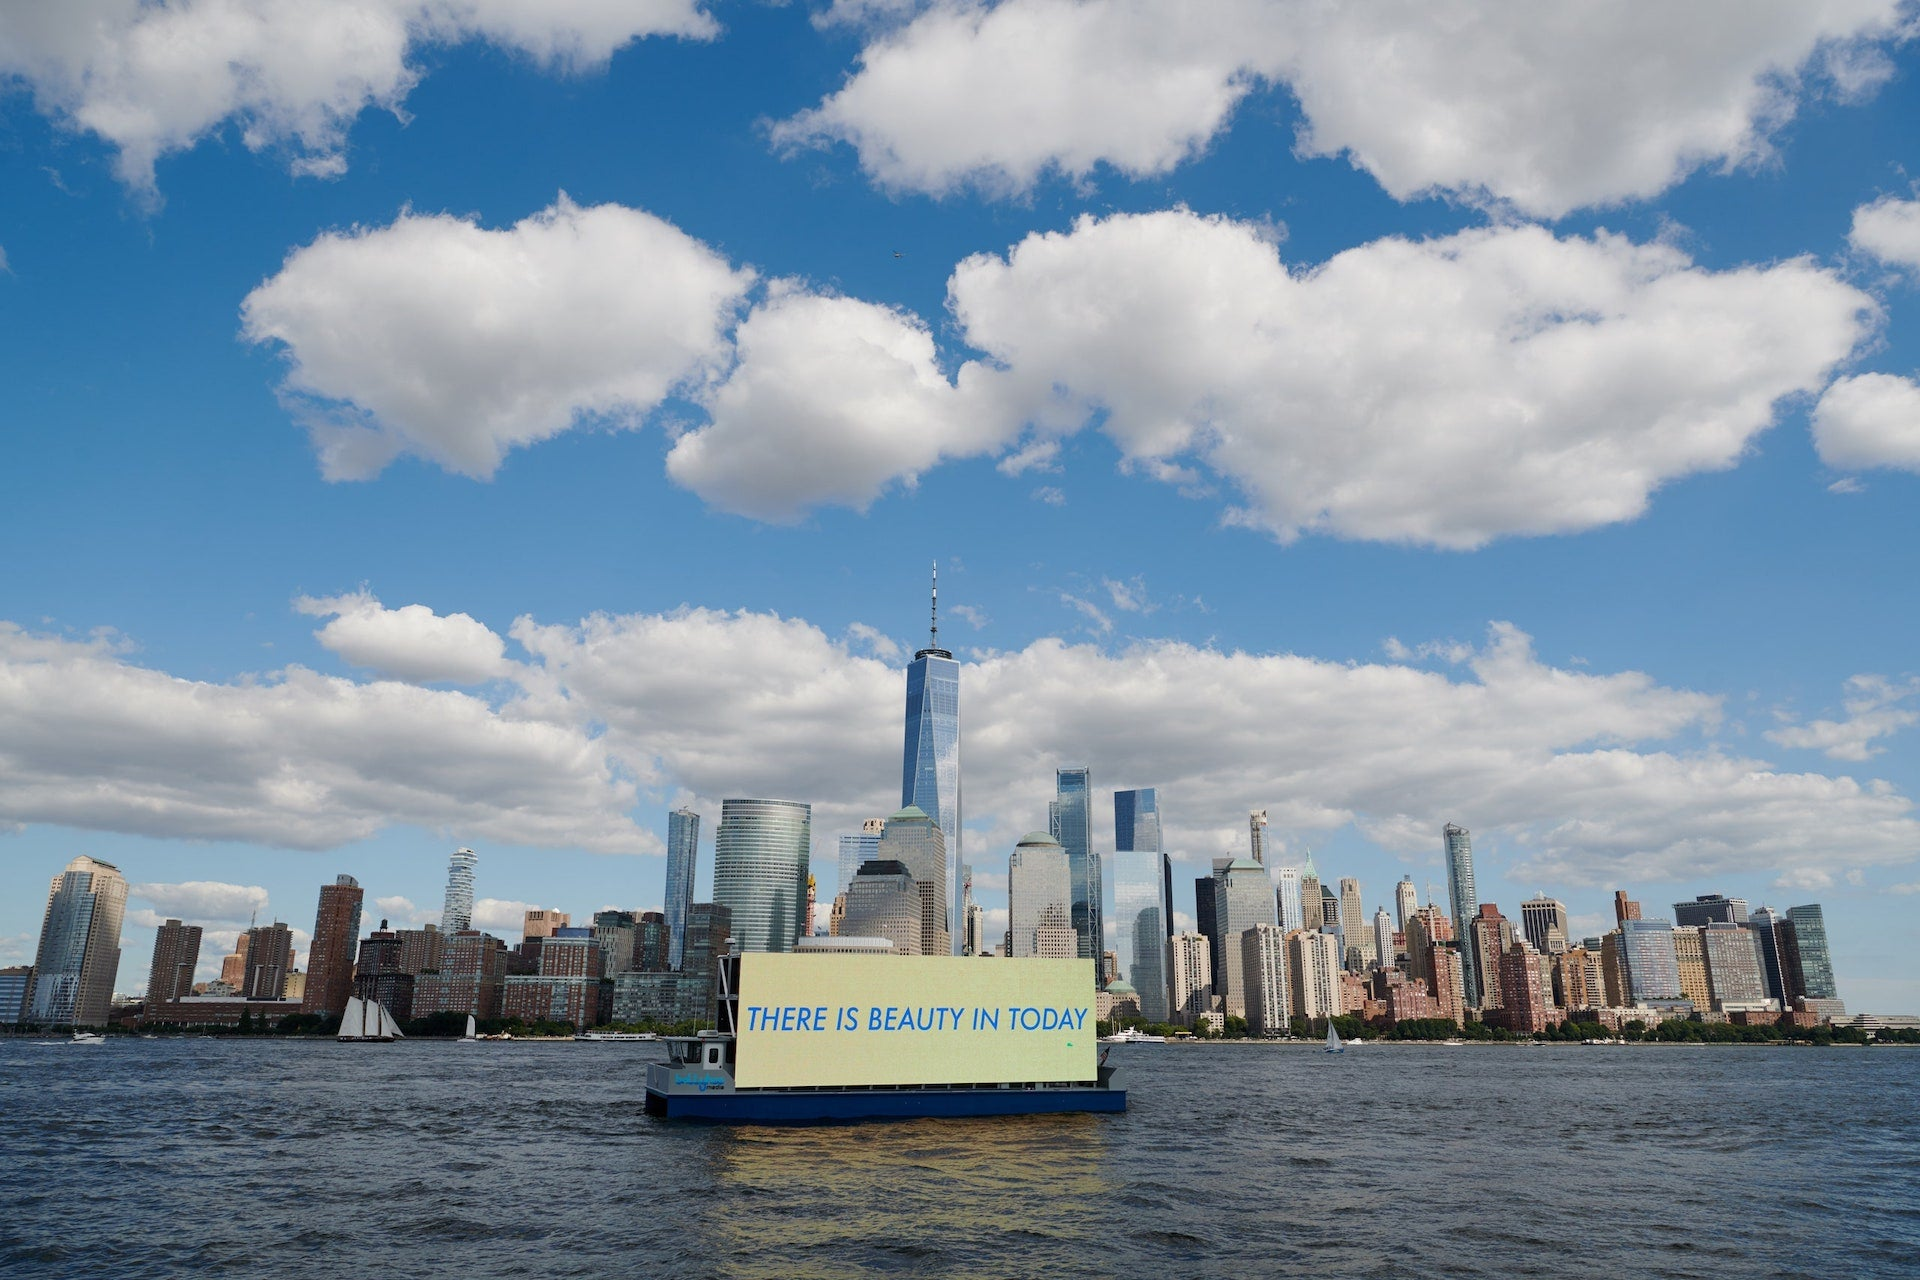 """Another paragon of American design: """"I can't manage to look away from this. It looks like a billboard learning to swim. It's an ingenious invention for an era of sea-level rise and high real estate prices. Even when it is used to advertise, it looks like an artwork."""" Photo © Ballyhoo Media"""